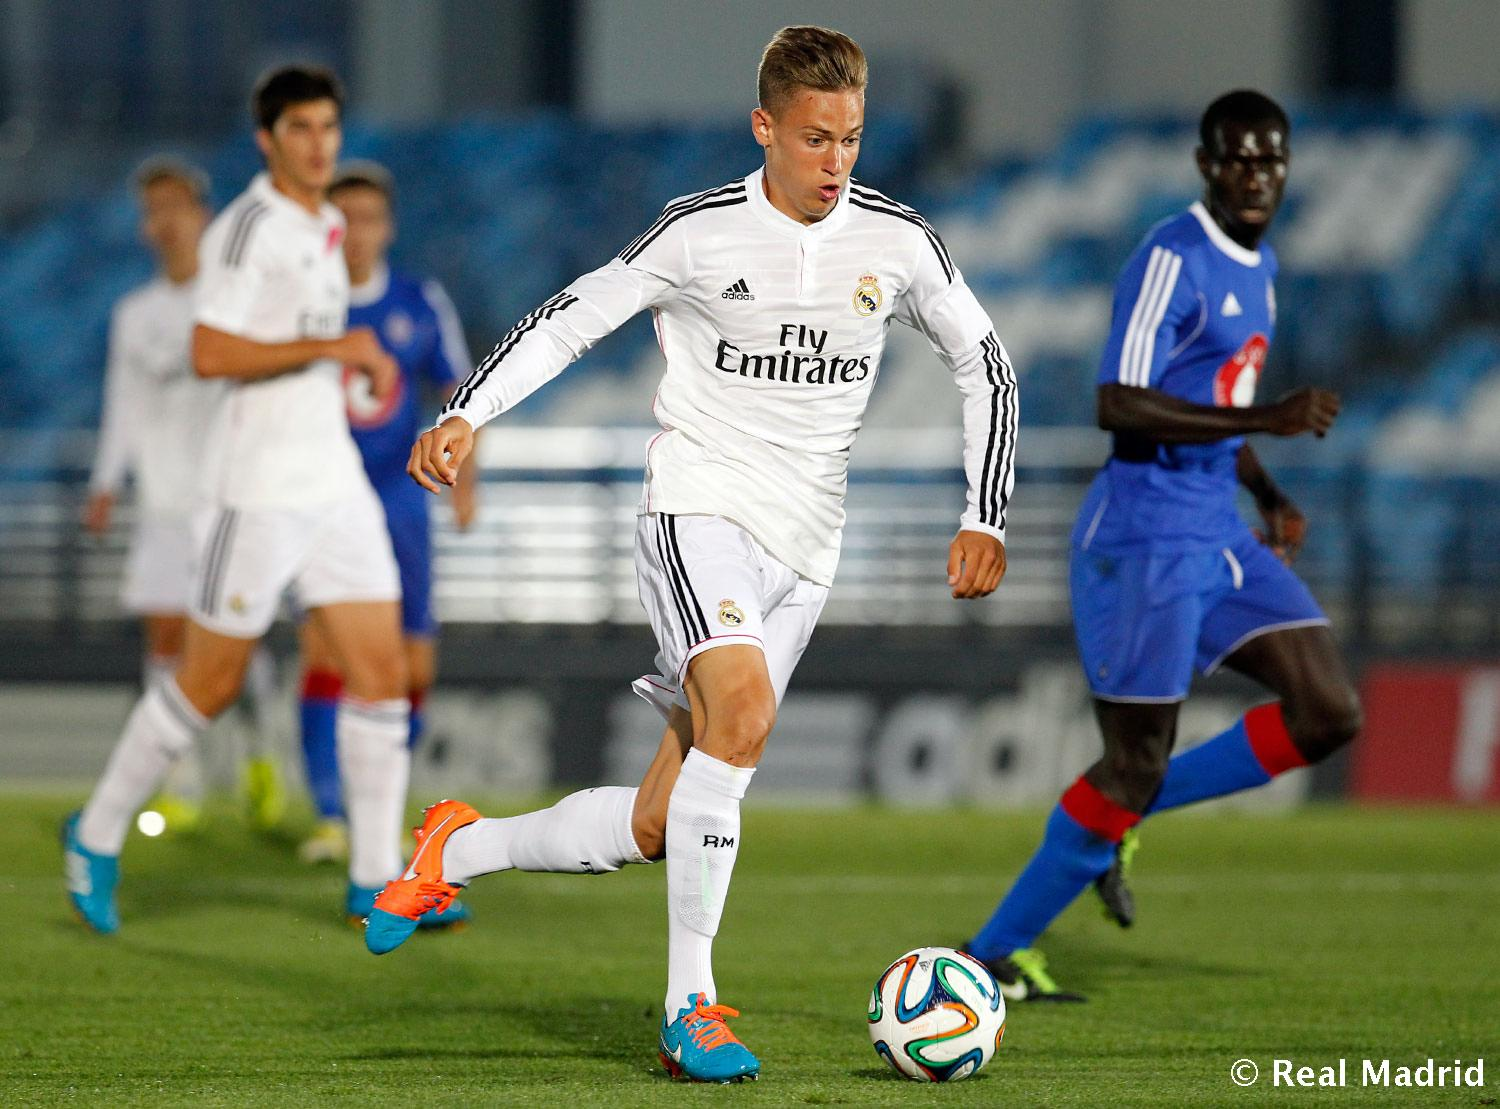 Real Madrid - Real Madrid Castilla - Amorebieta - 27-09-2014